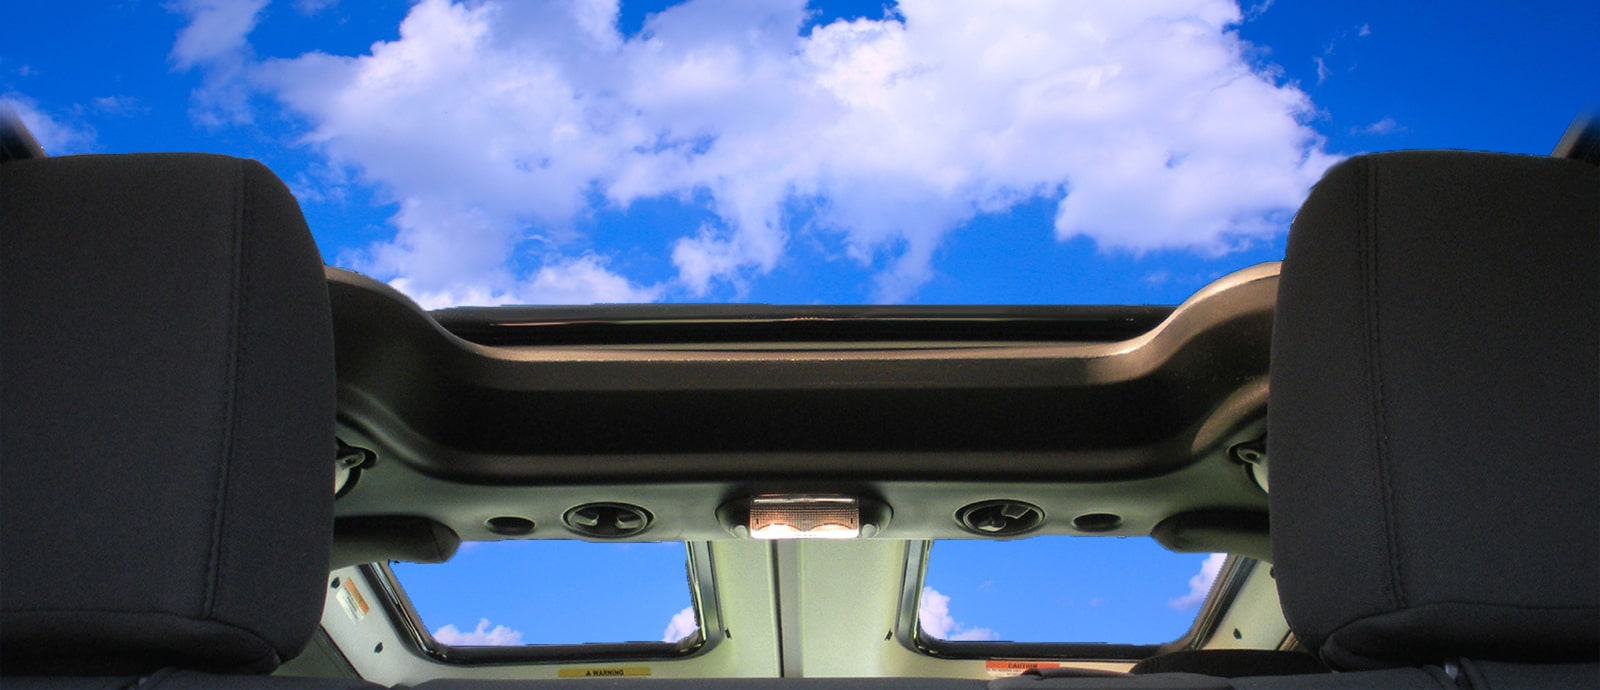 JeeTops™ sunroof